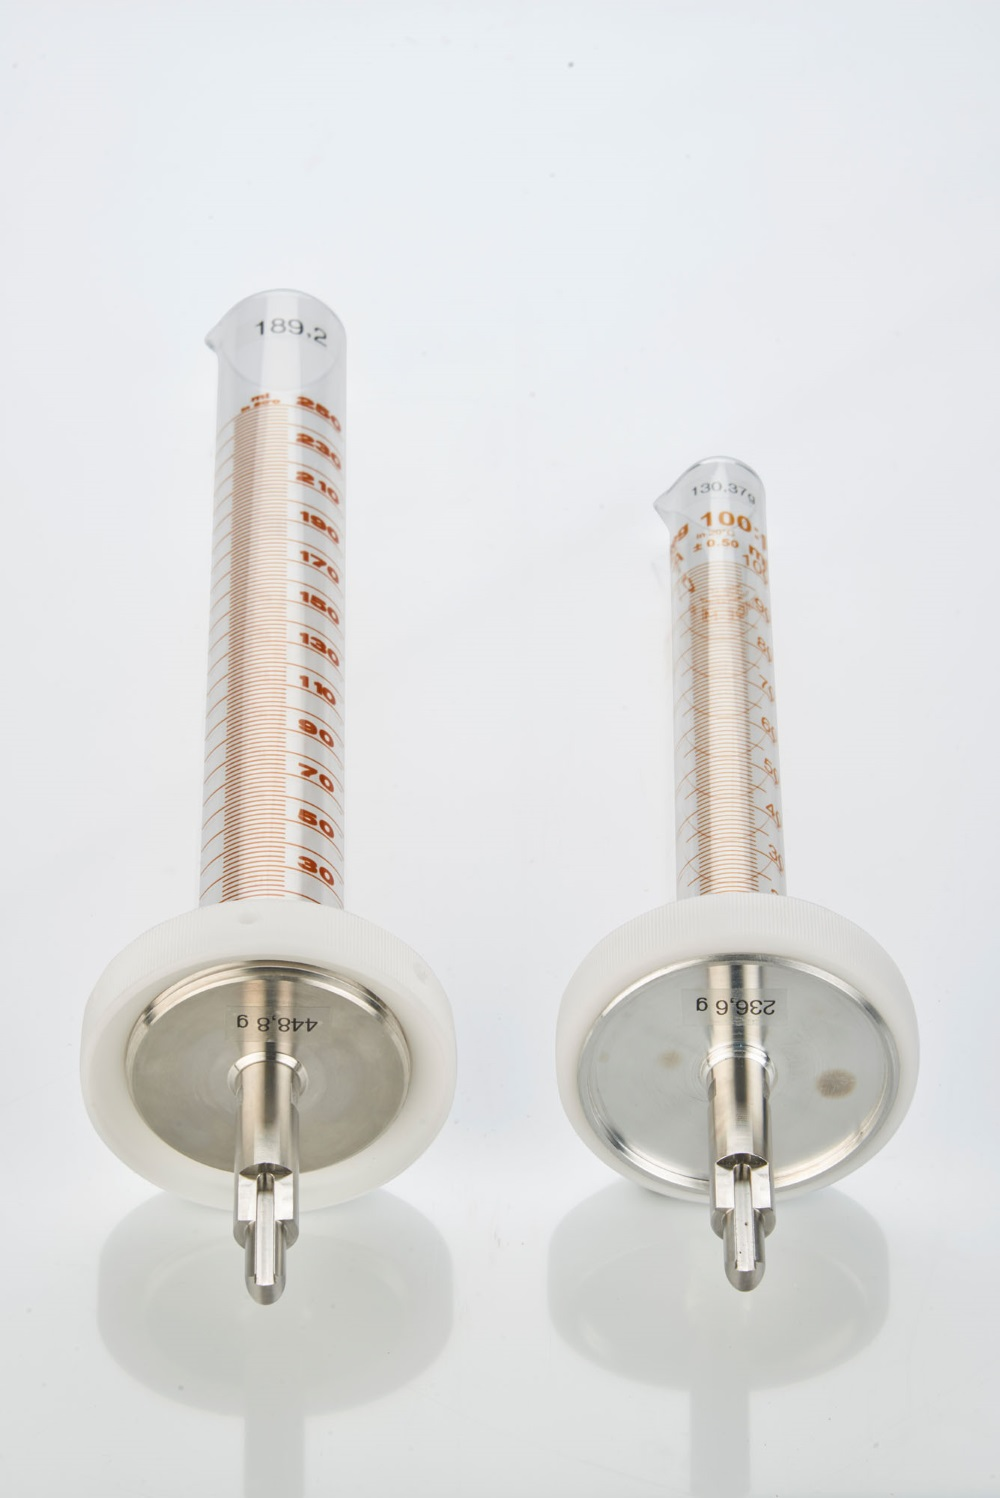 Standard 250ml and support (left) and the smaller 100ml cylinder and support (right)